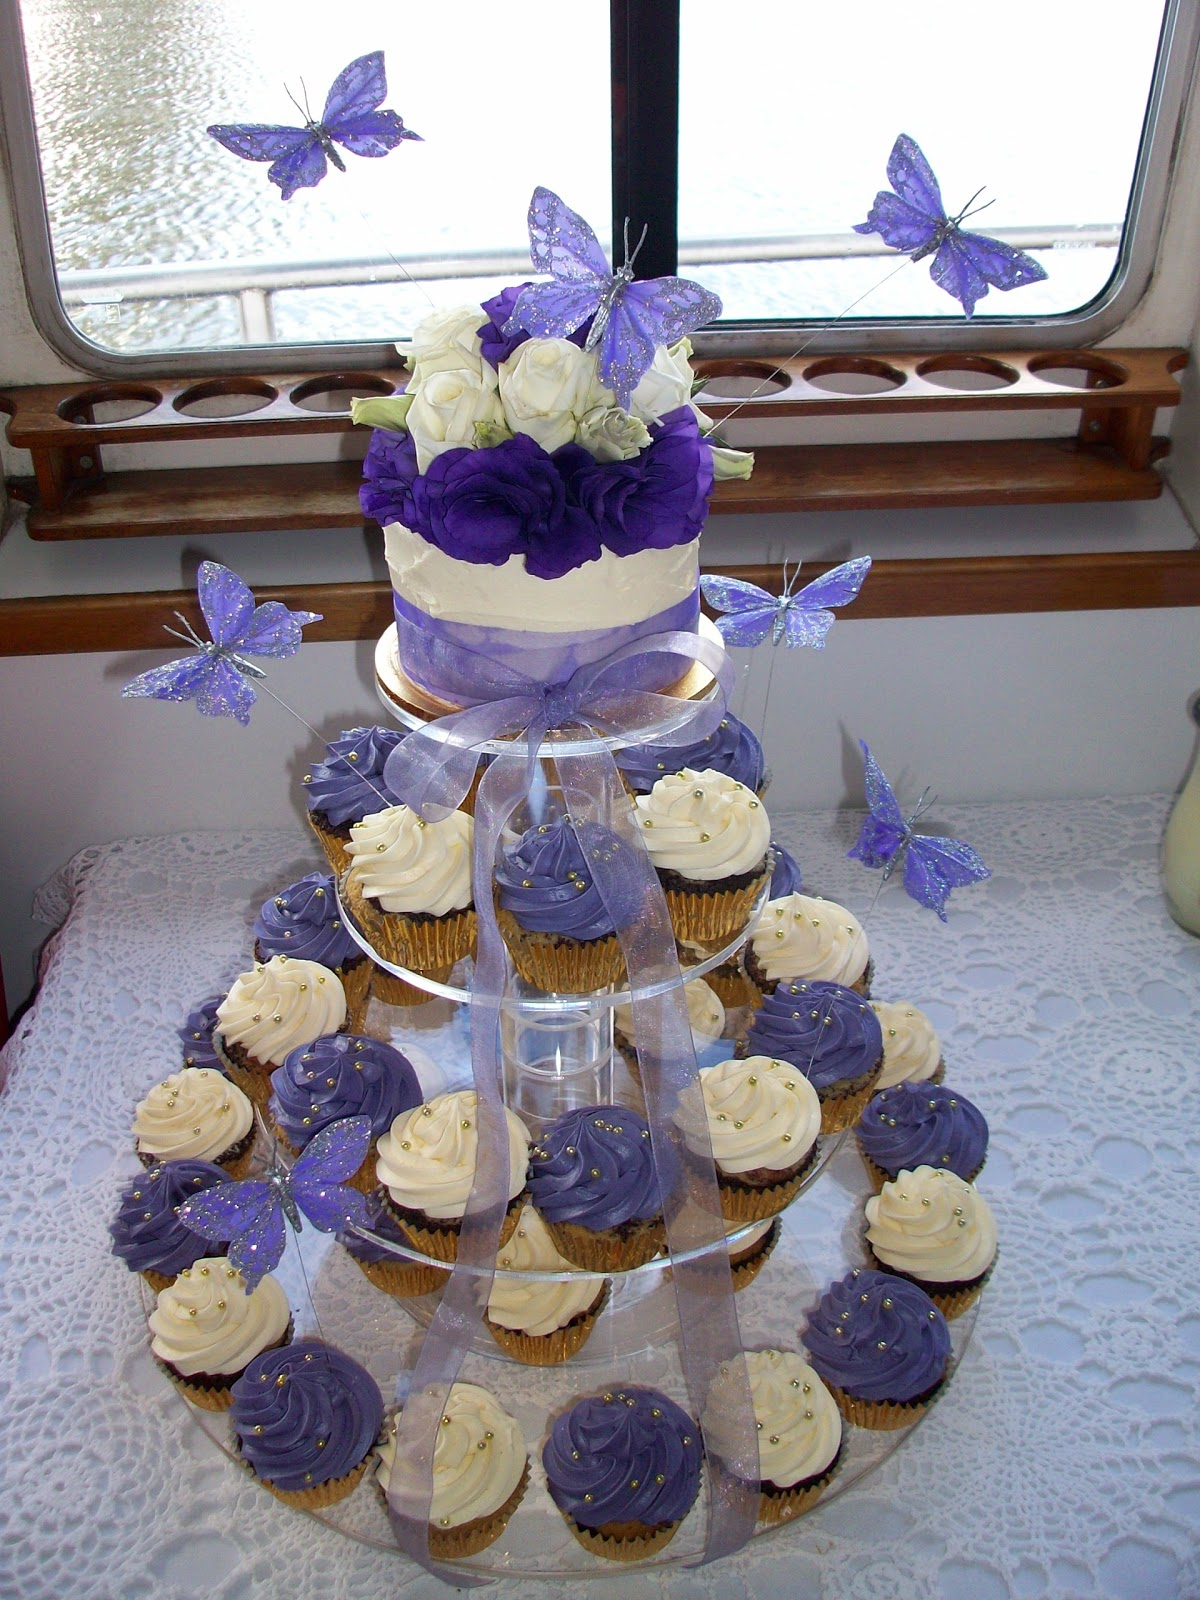 wedding cakes pictures purple wedding cupcakes. Black Bedroom Furniture Sets. Home Design Ideas